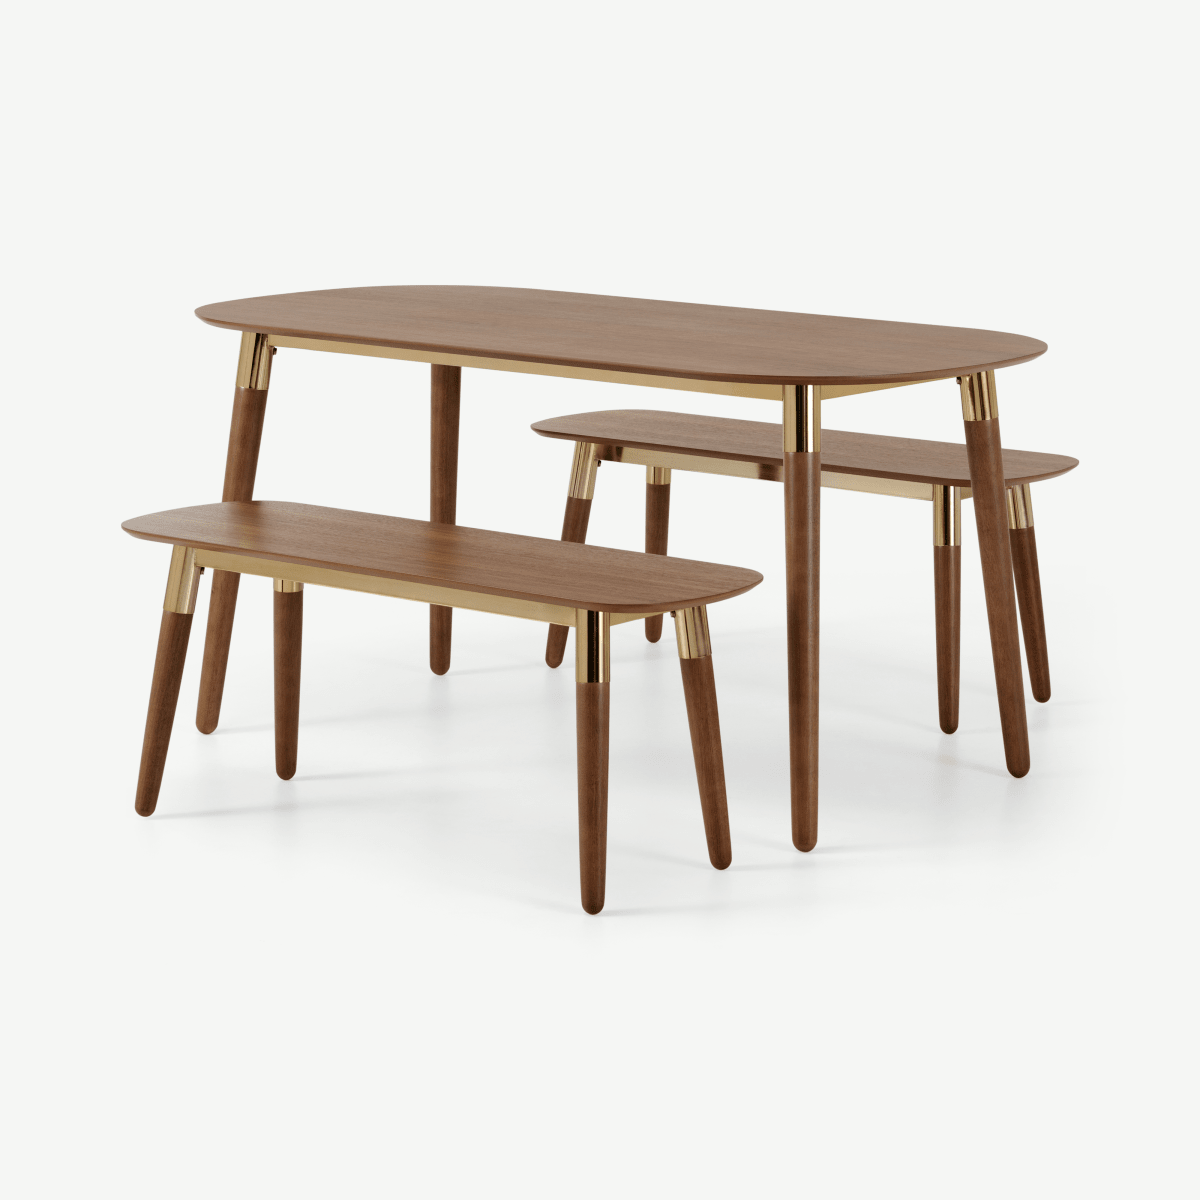 Edelweiss Dining Table and Bench Set, Walnut & Brass